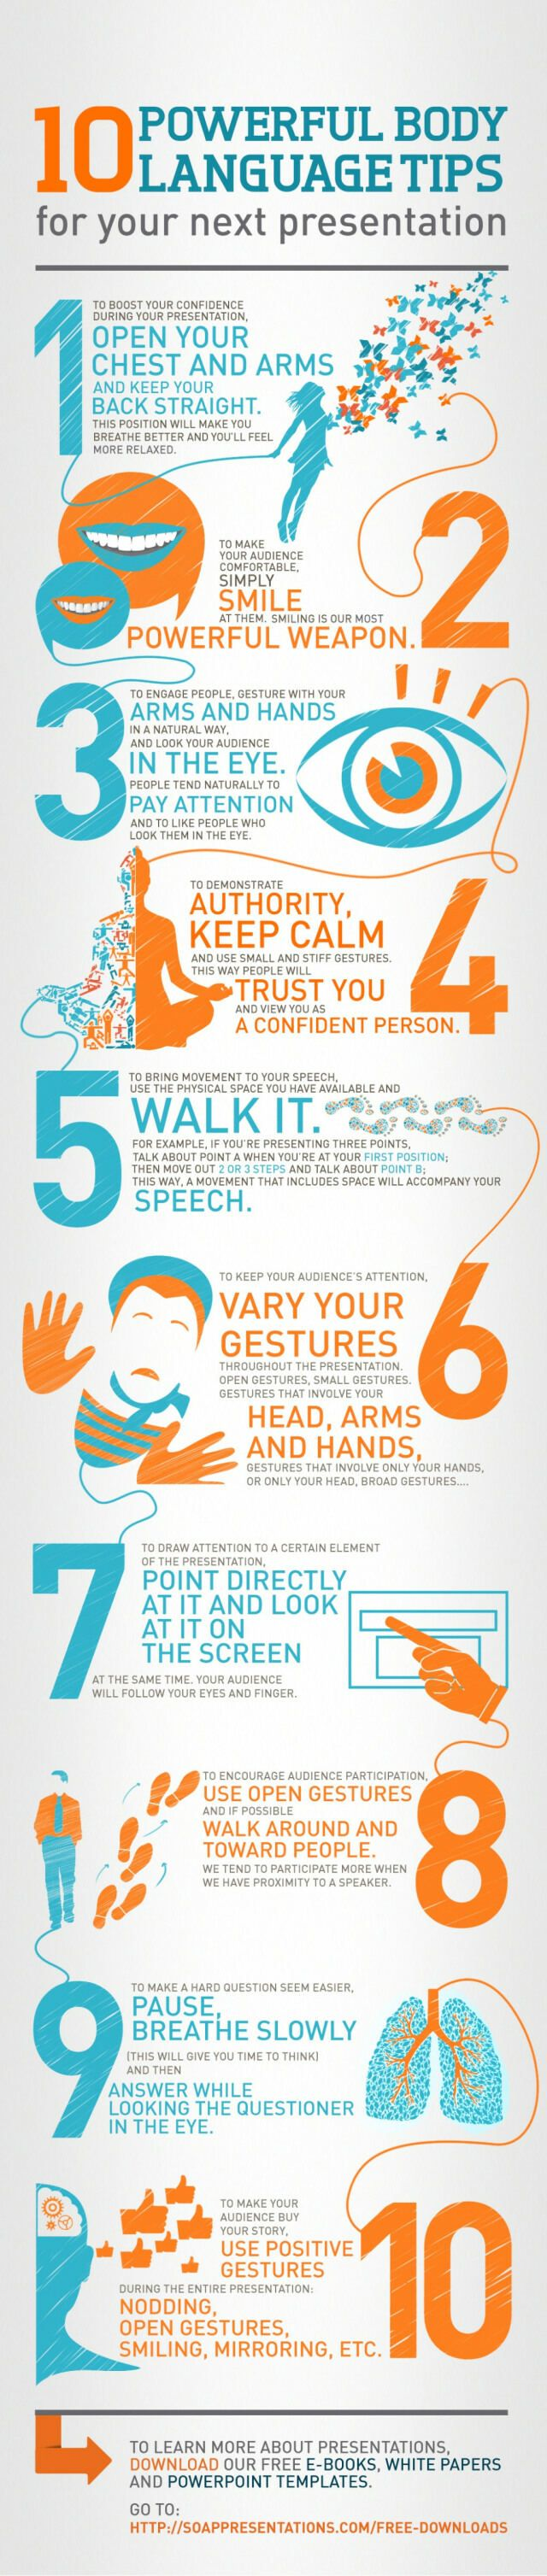 Body language tips for presentations   If you're not feeling overly confident, 'fake it til you make it'.